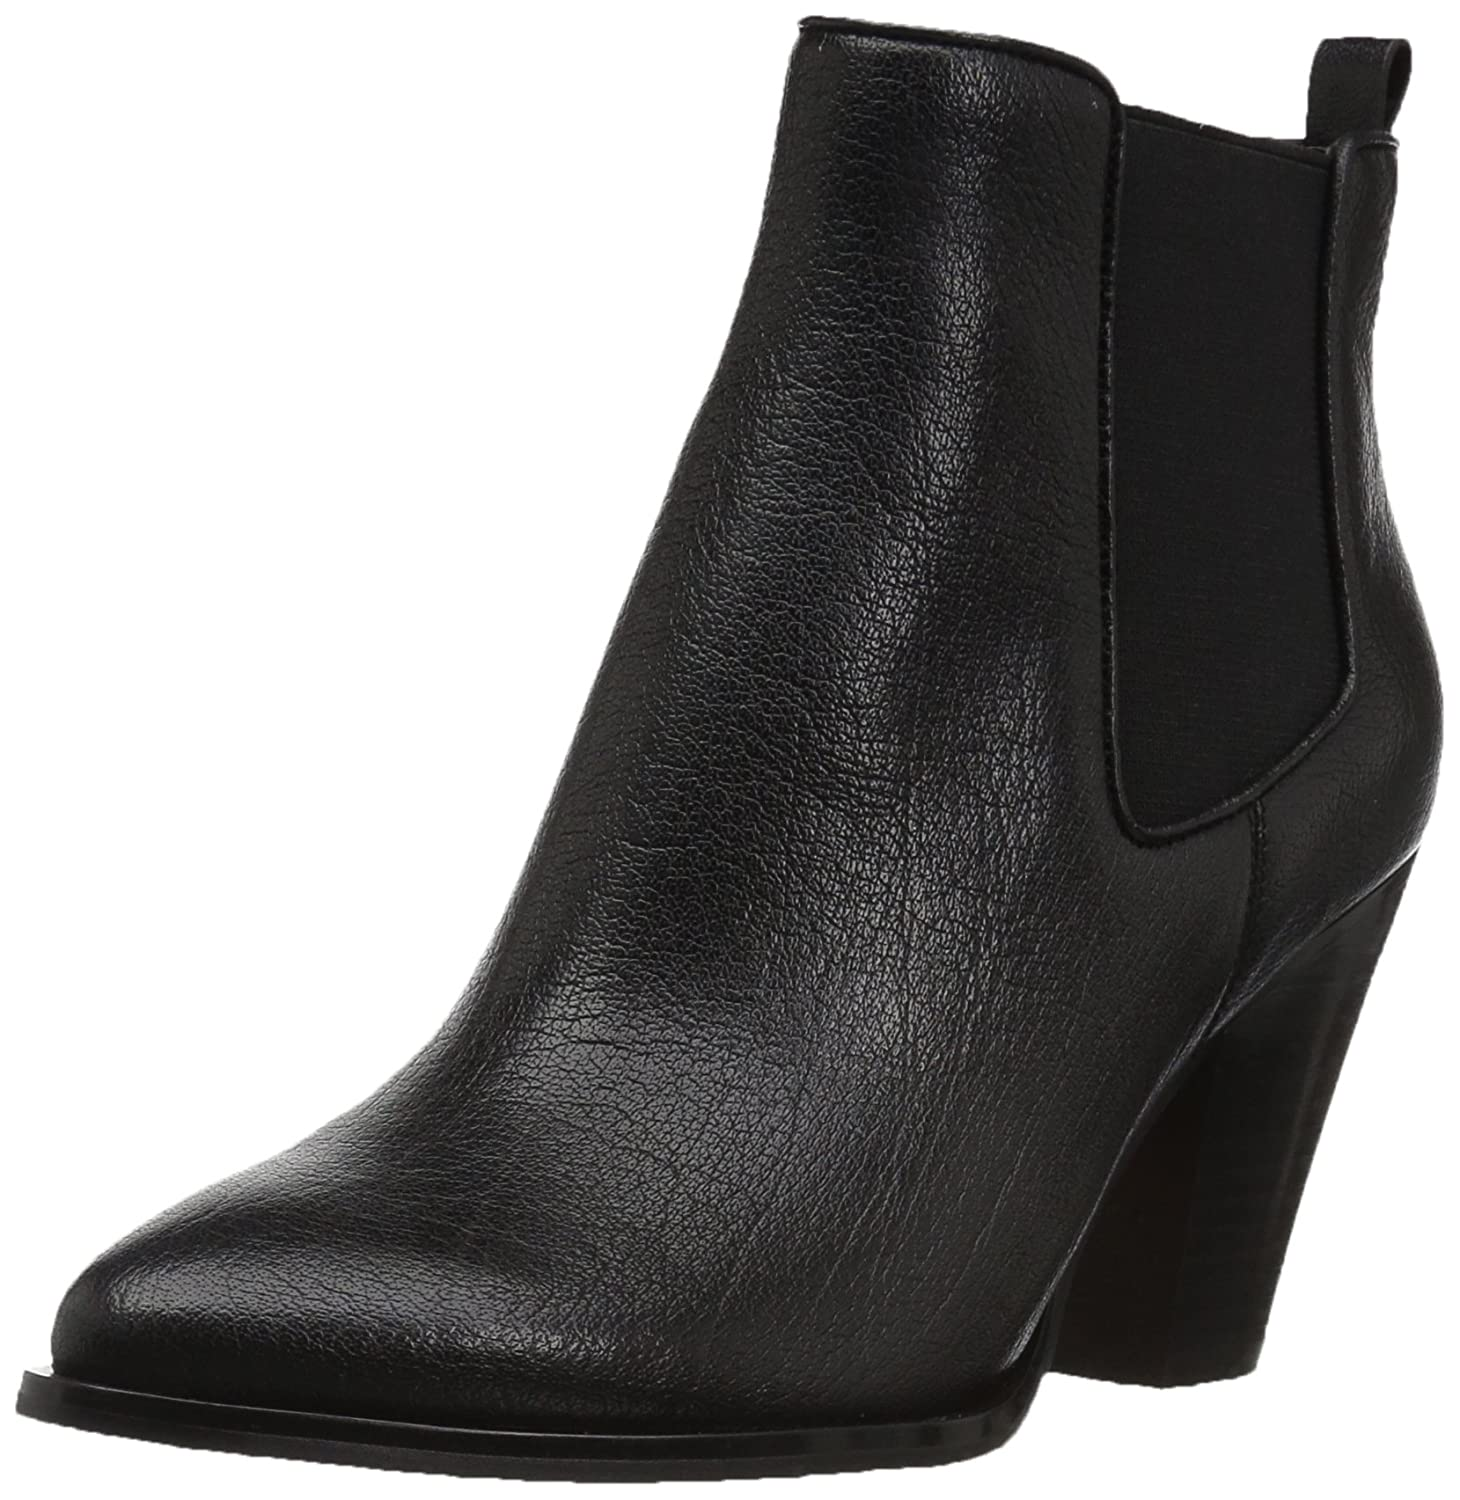 The Fix Women's Joelle Cowboy Style Ankle Boot B074JP8YS2 8 B(M) US|Black Leather